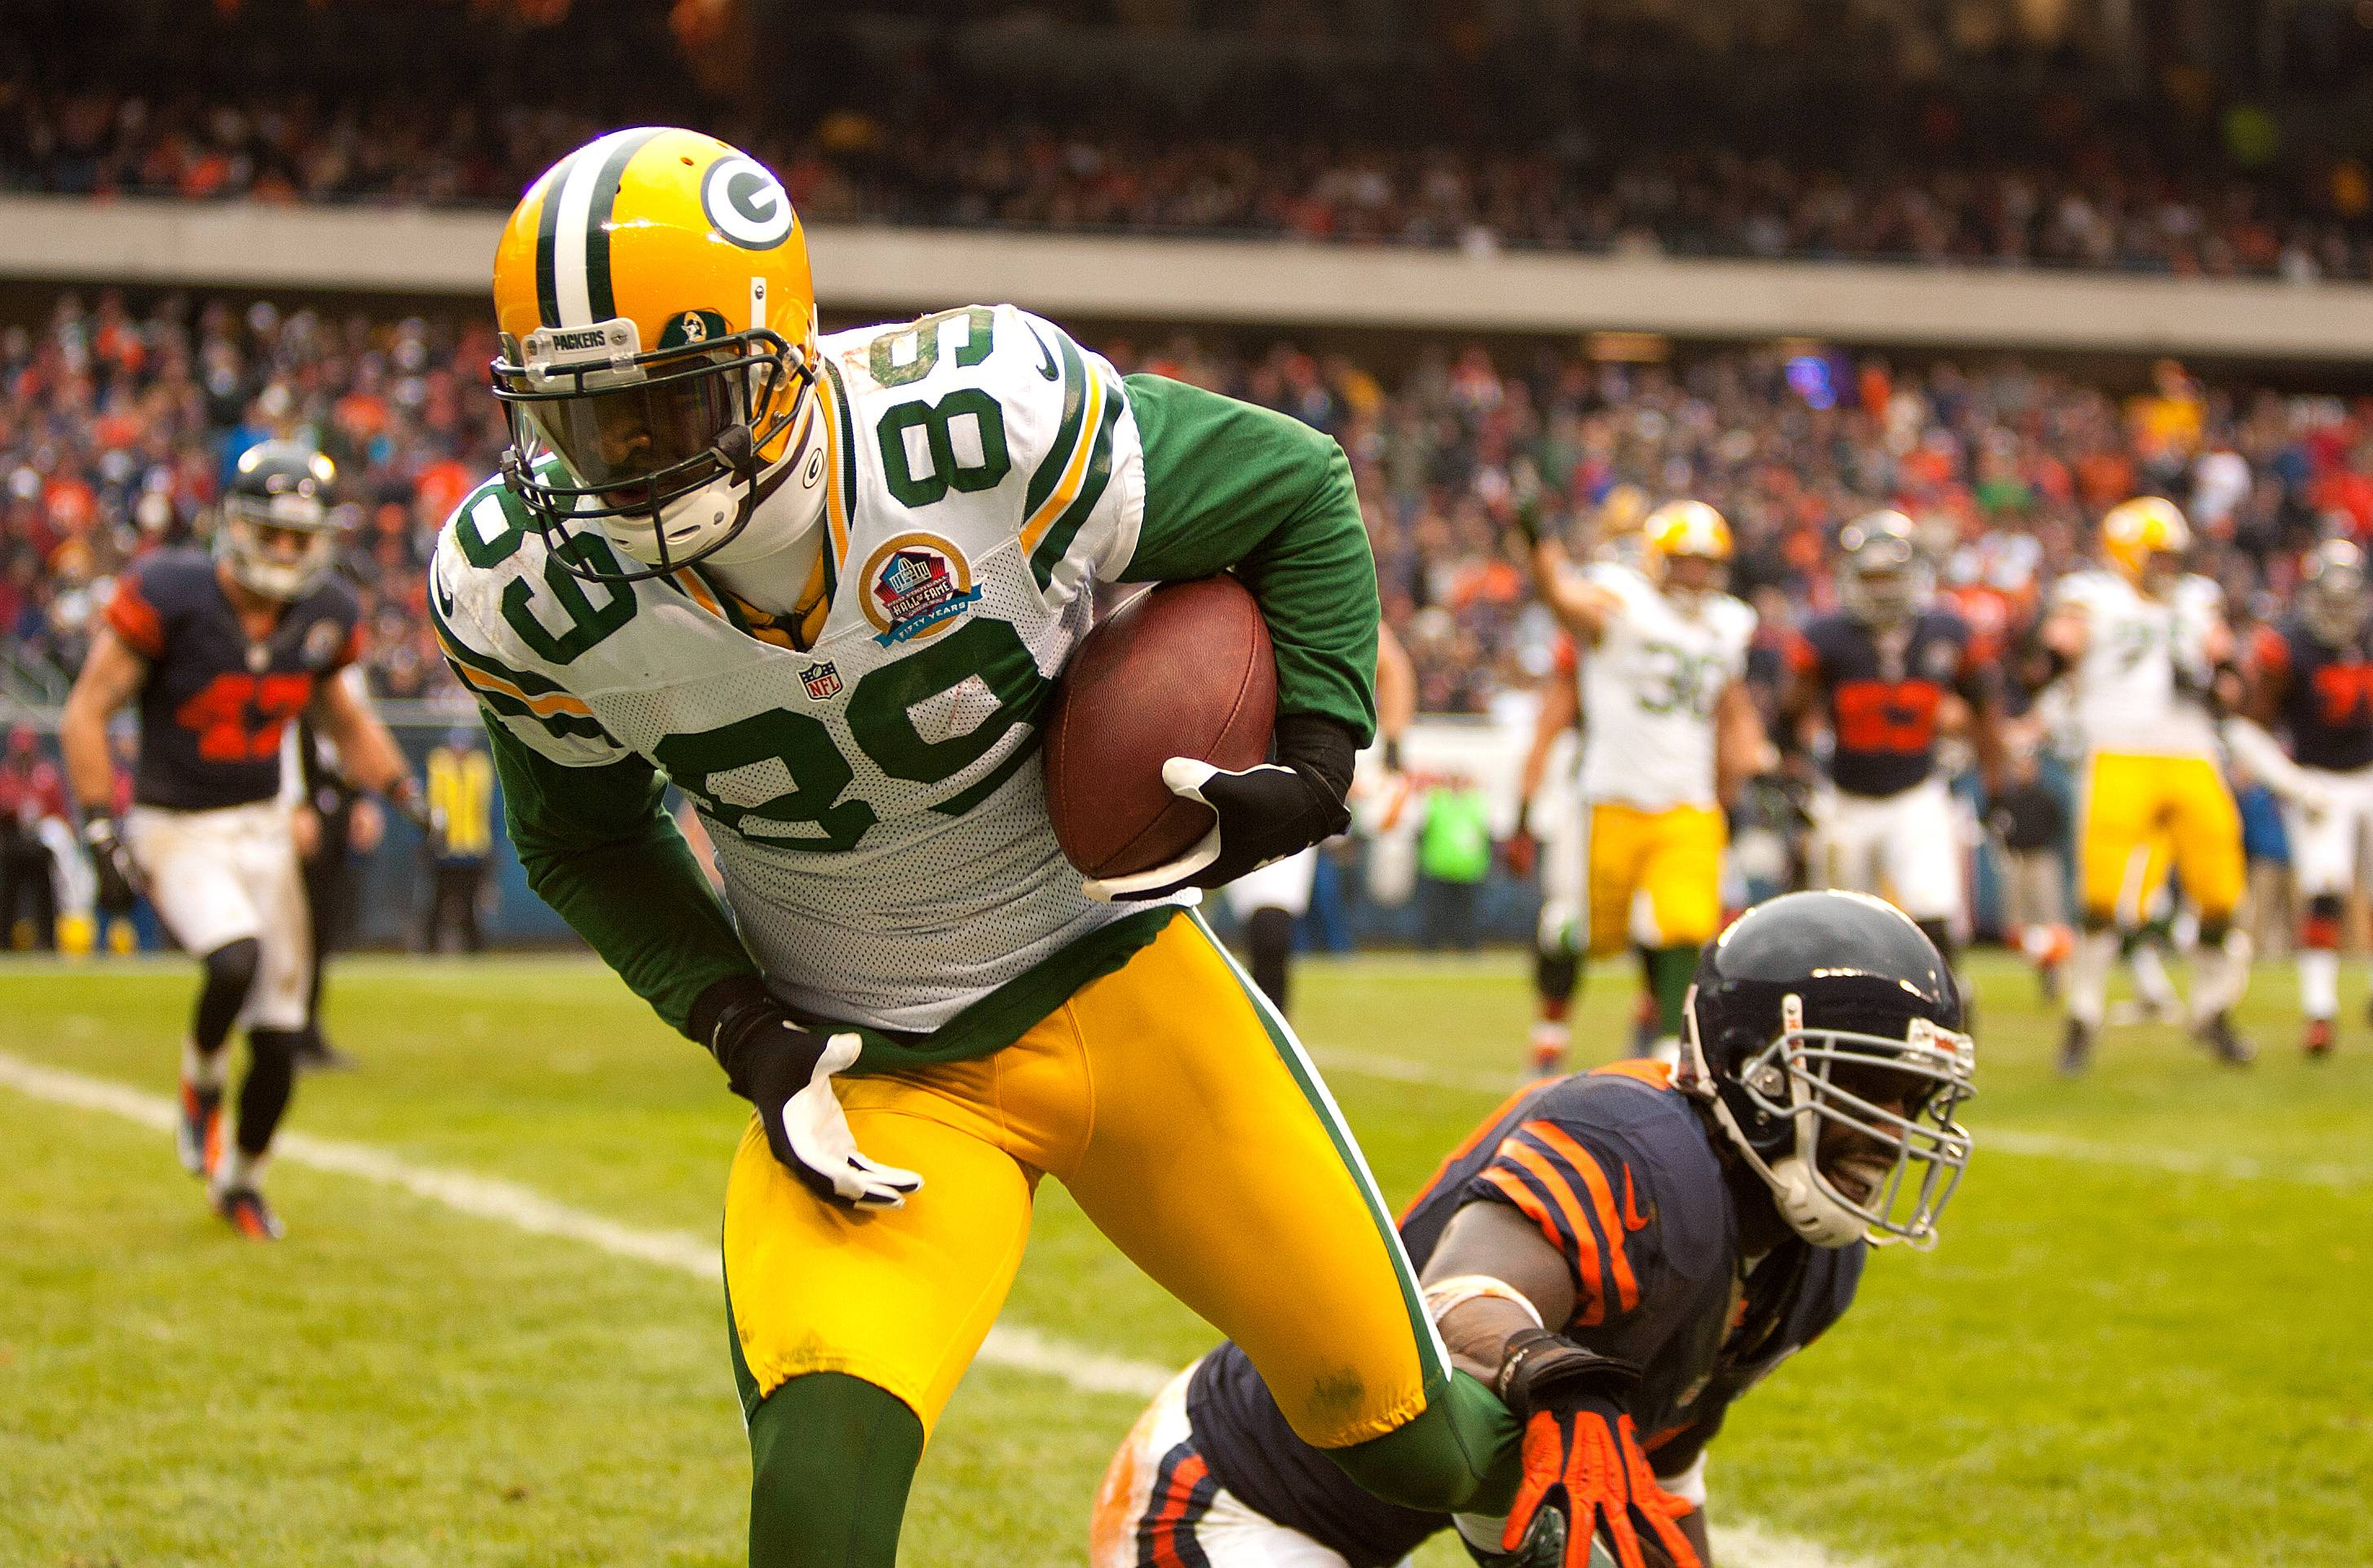 The Packers' James Jones scores a touchdown against the Bears last season.